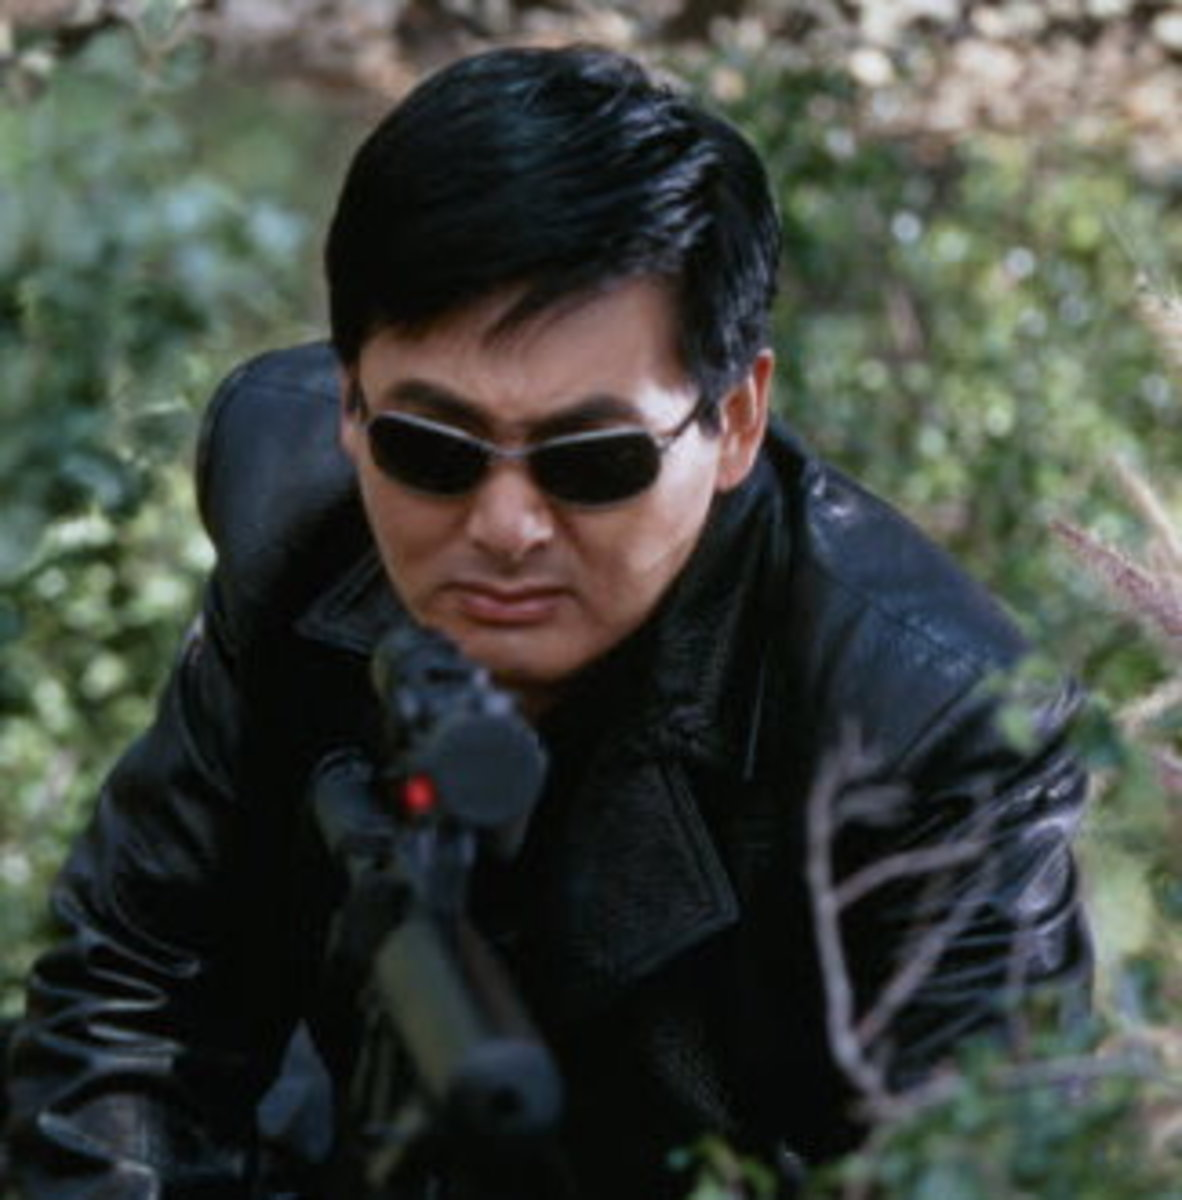 Chow Yun Fat hairstyle.